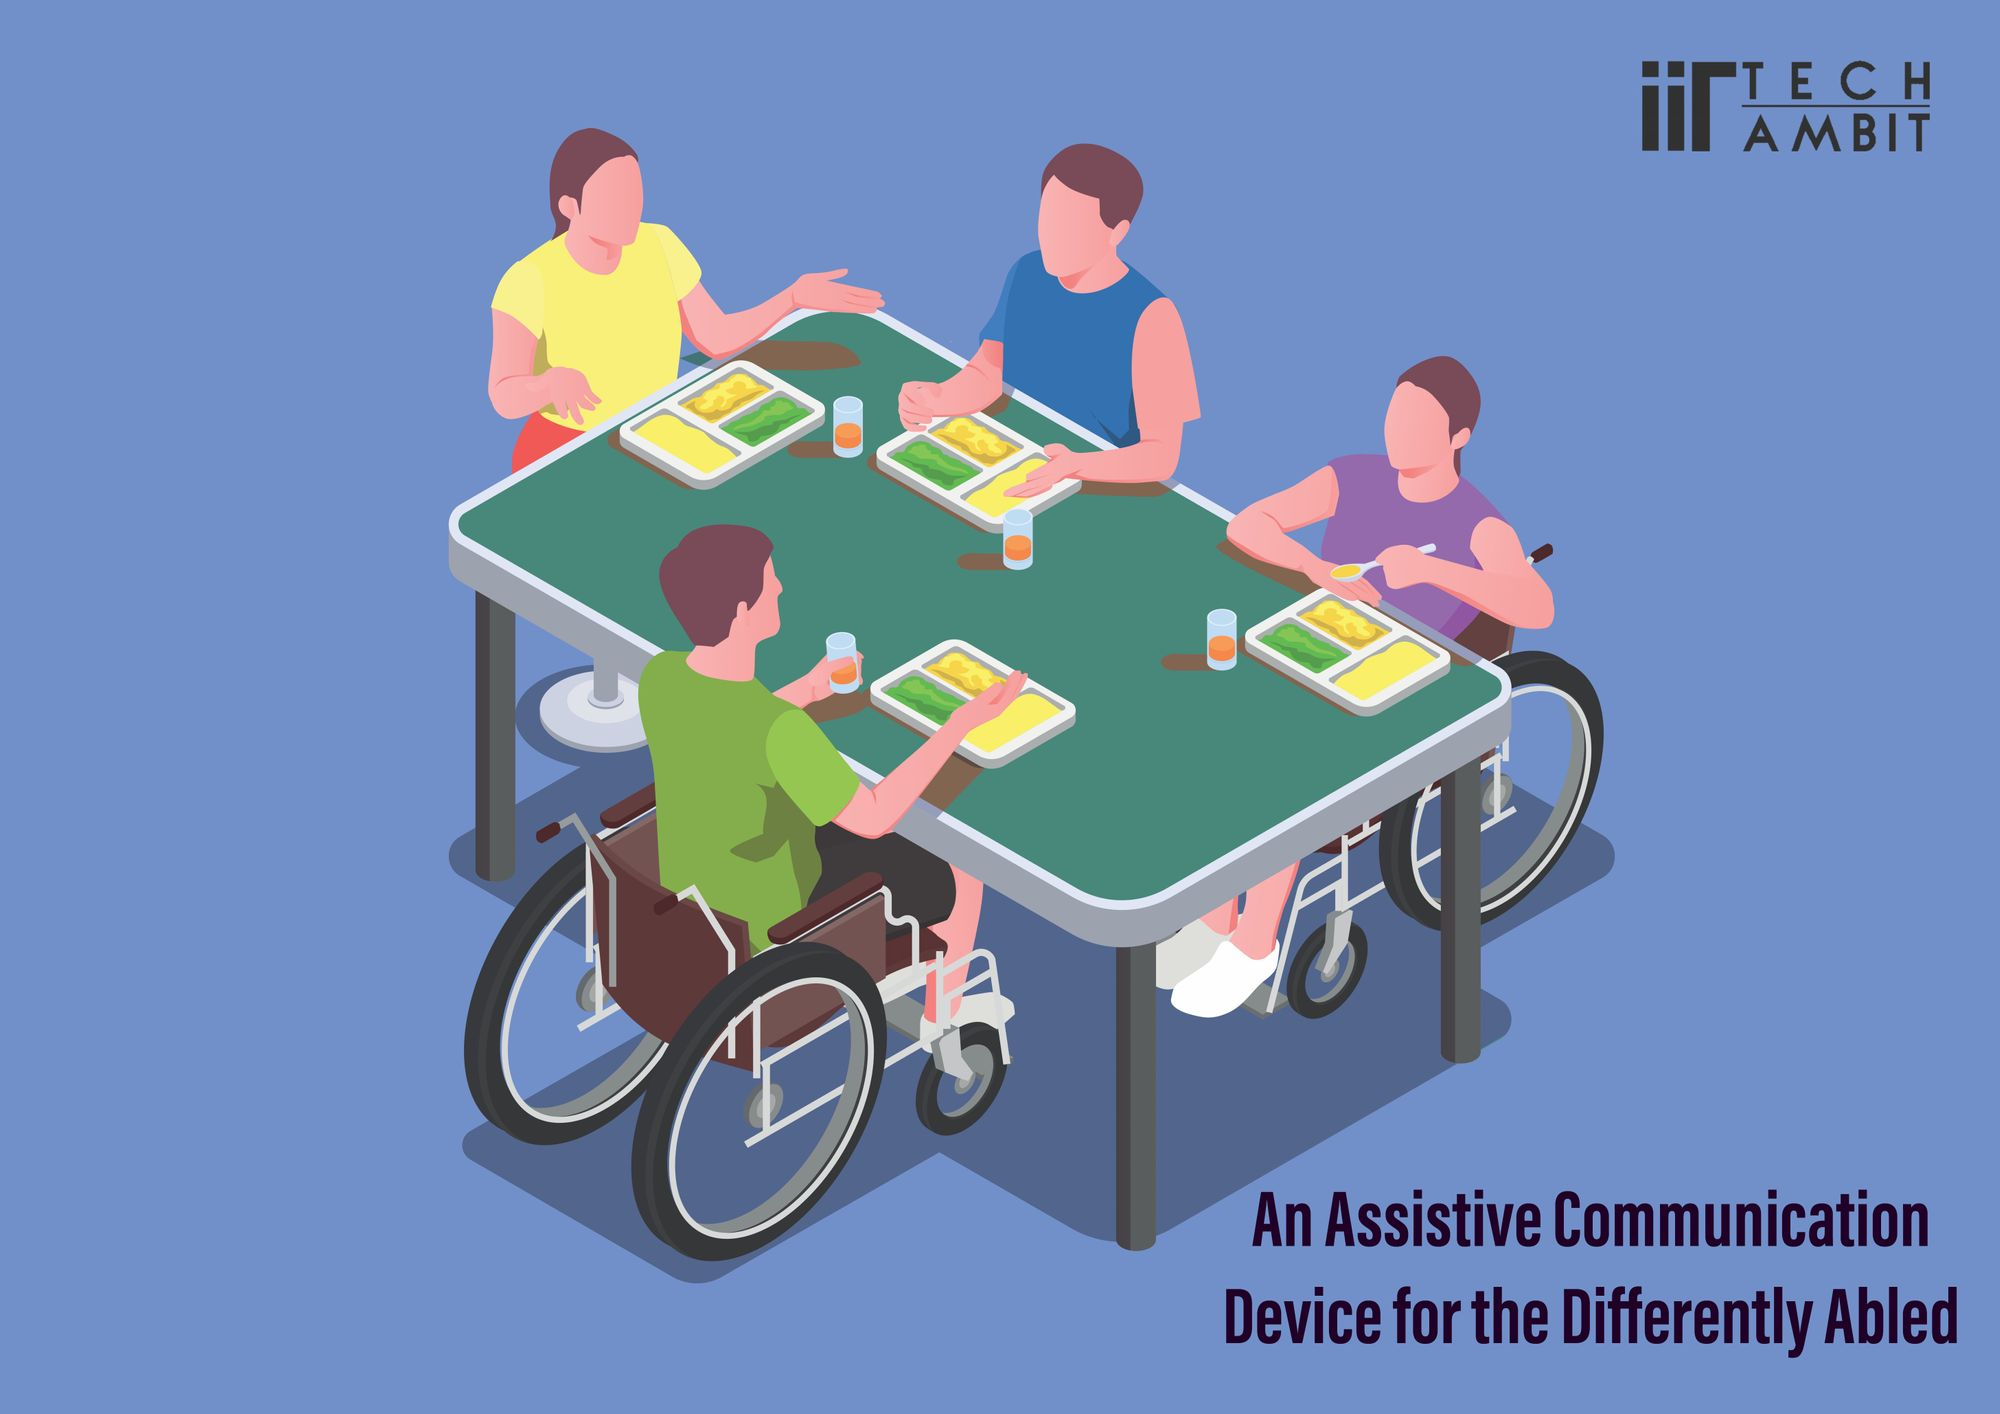 An Assistive Communication Device for the Differently Abled